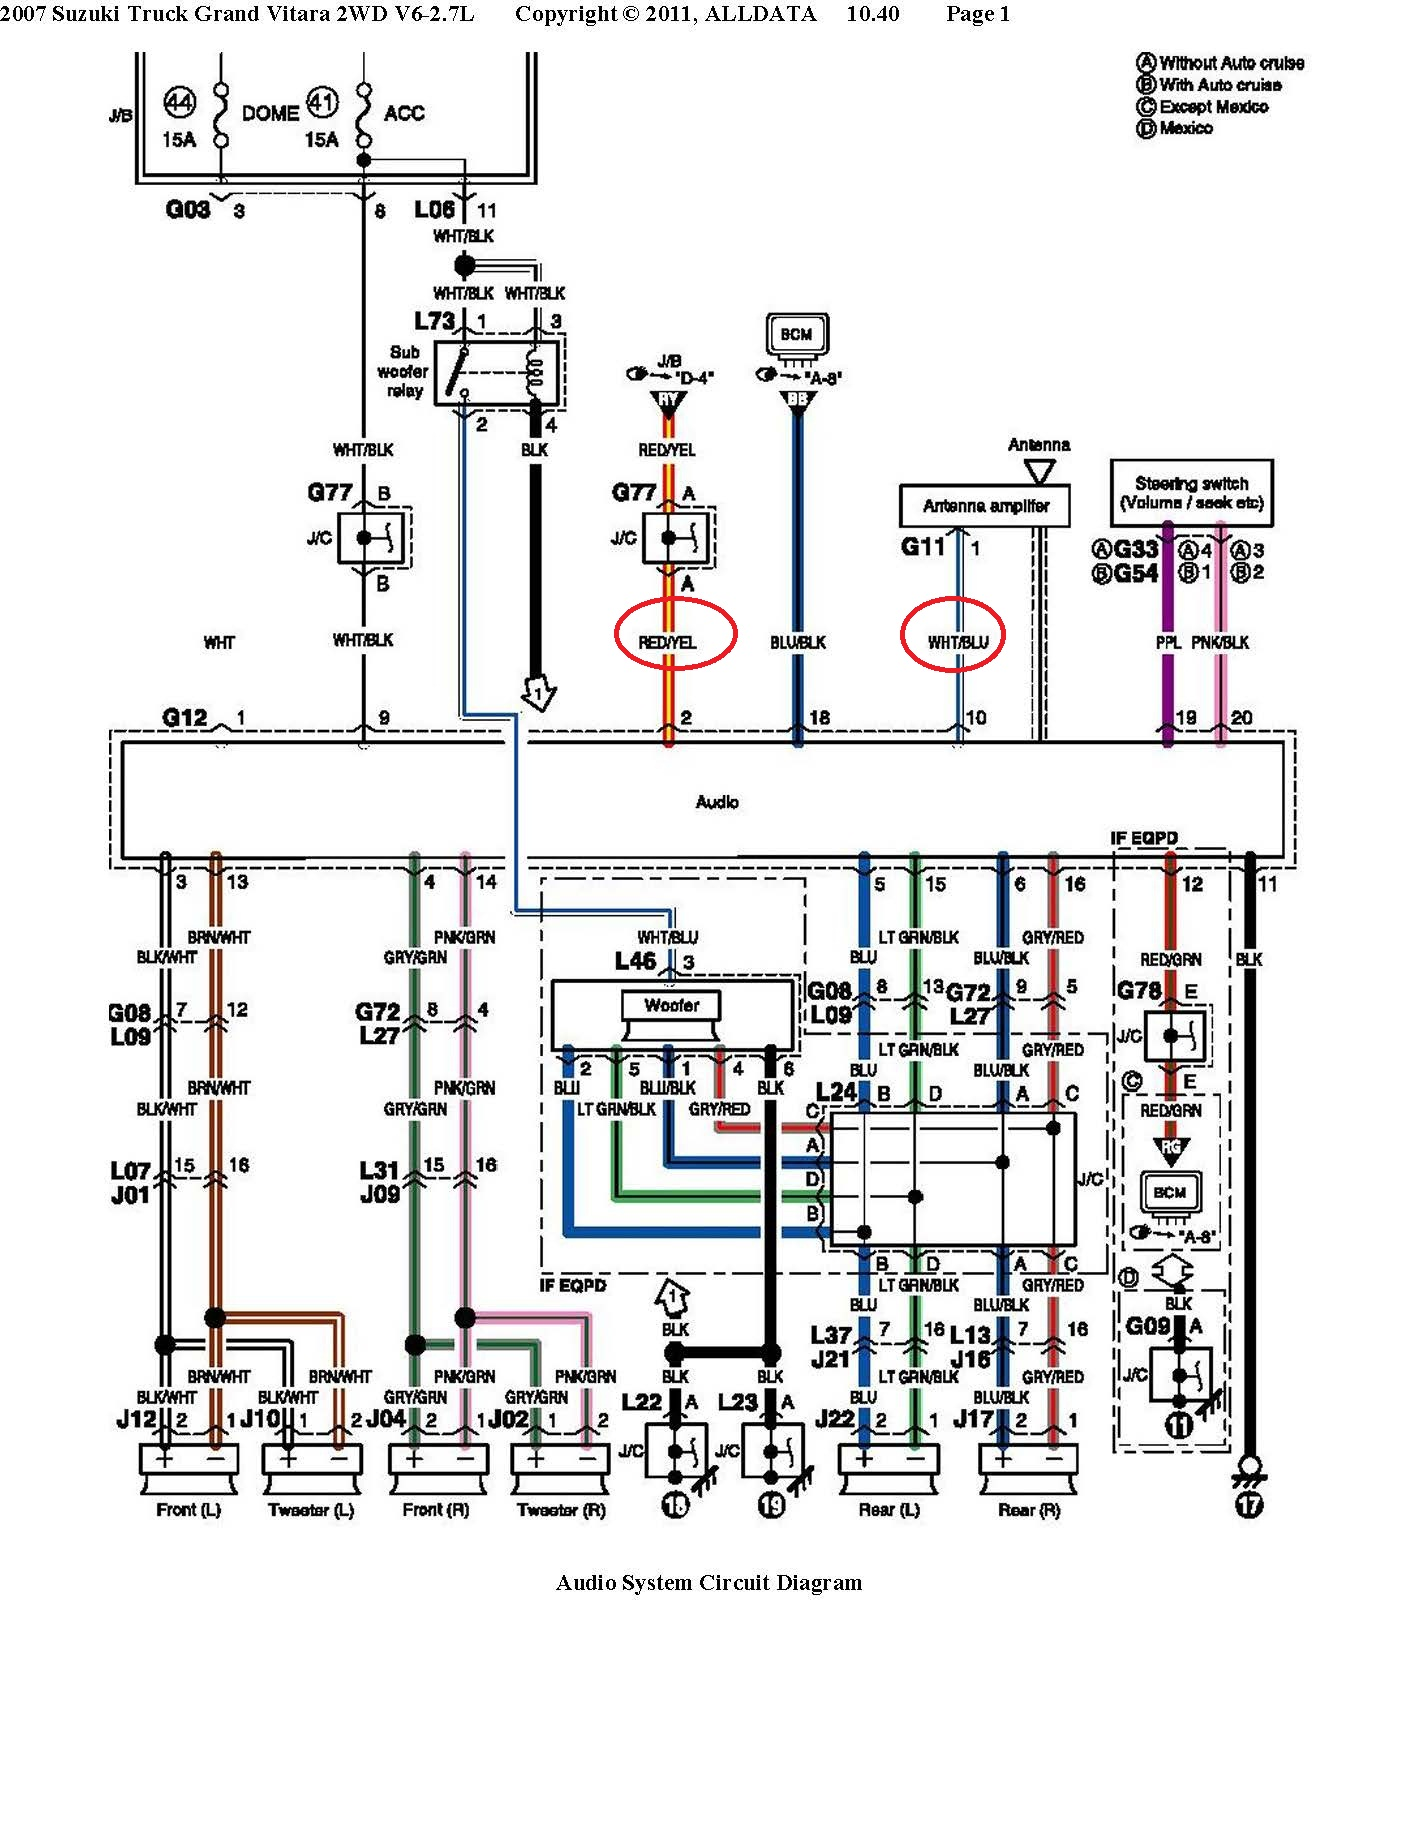 Suzuki Car Radio Stereo Audio Wiring Diagram Autoradio Connector  Harley-Davidson Radio Wiring Diagram Radio Wiring Diagram Suzuki